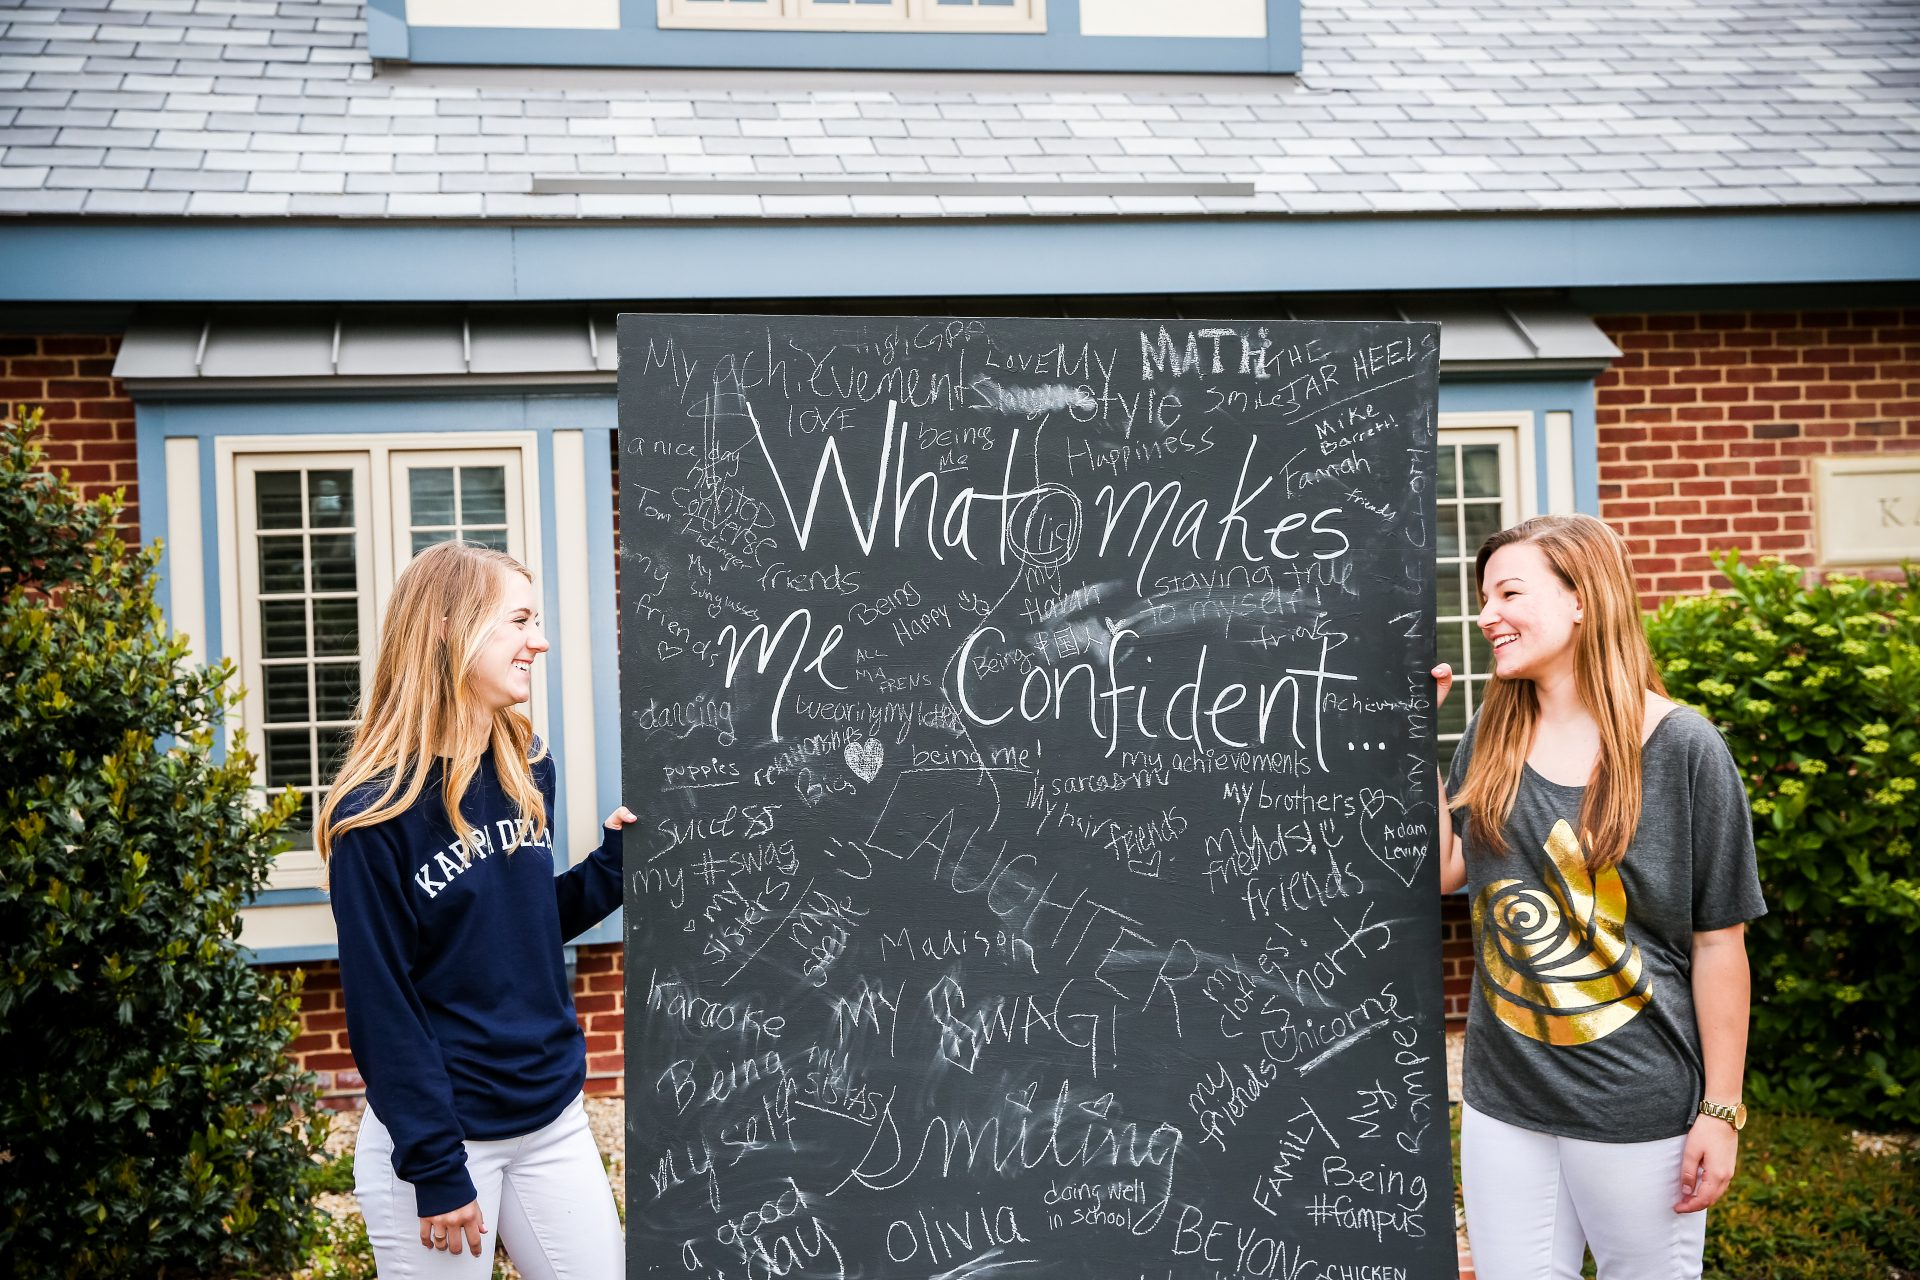 Confidence Coalition Chalkboard What makes me confident Kappa Delta Sorority